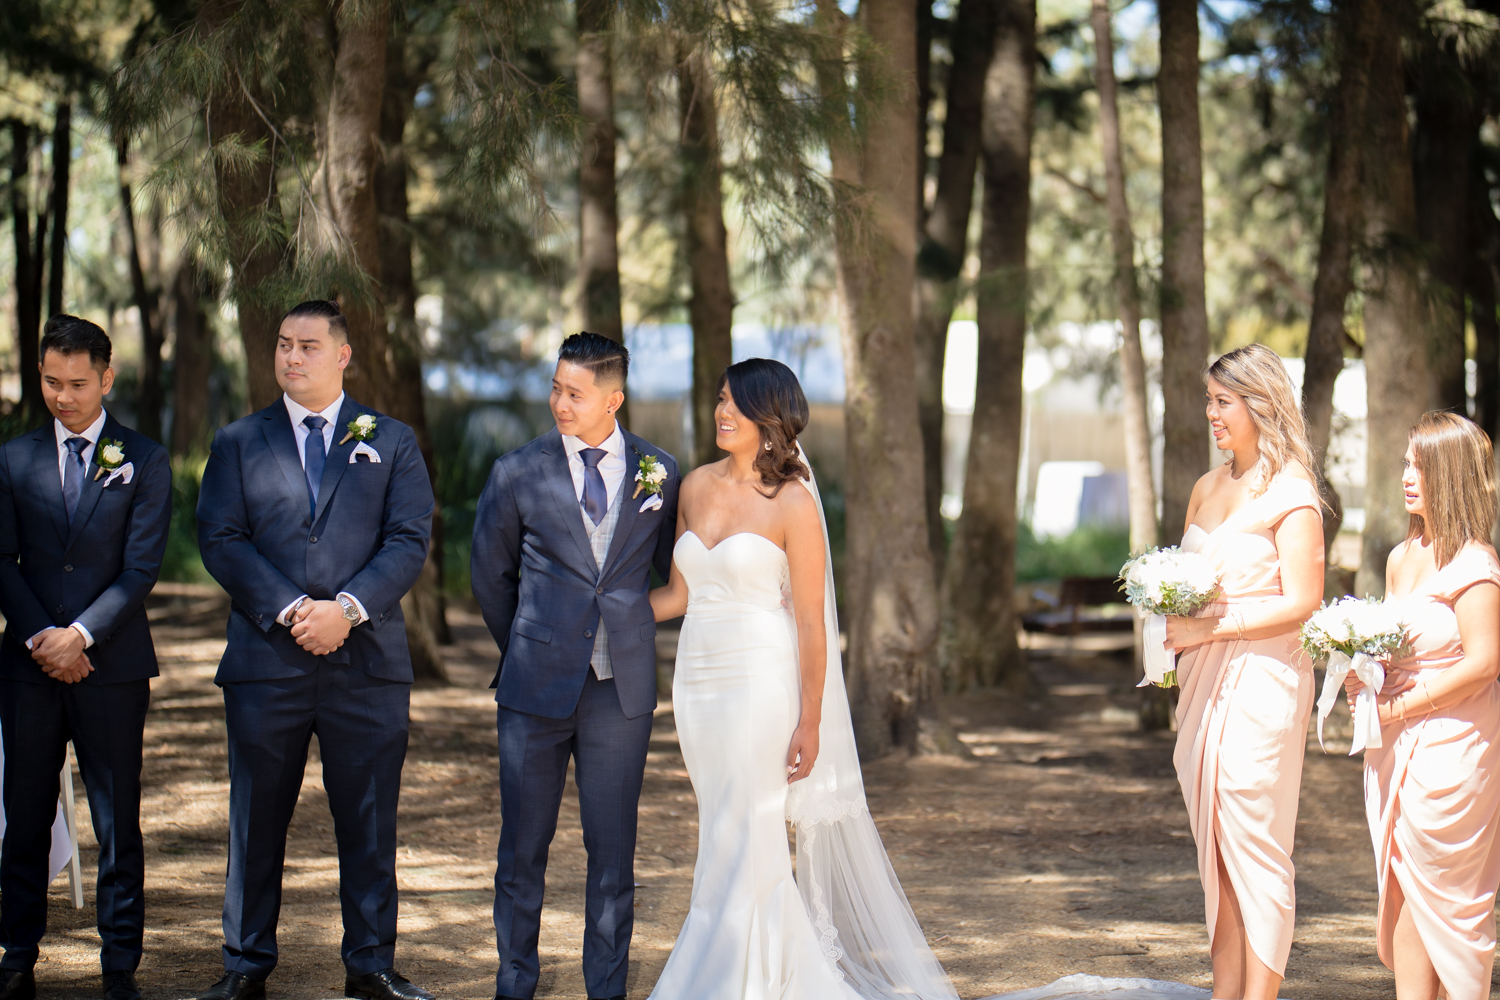 Canberra-Wedding-Photography-2.jpg